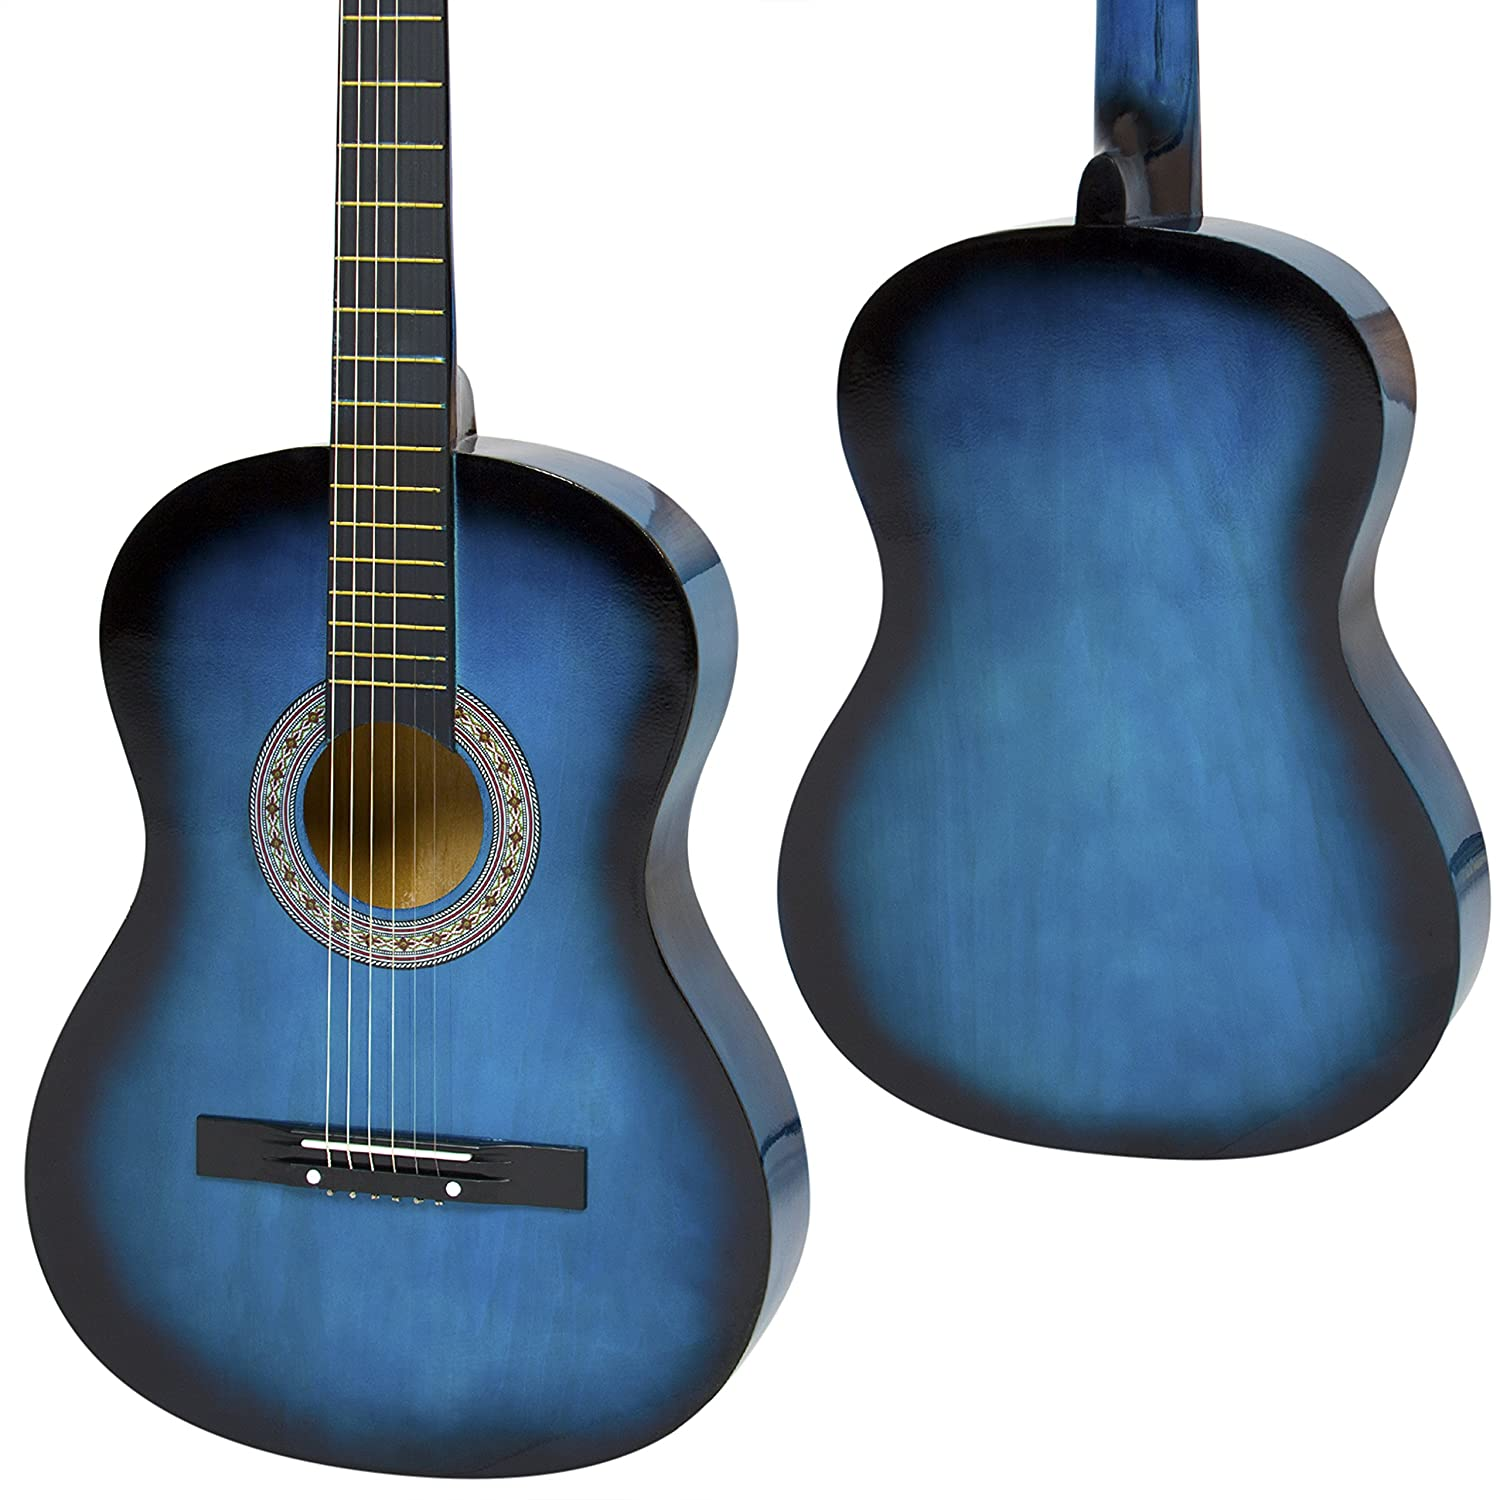 Amazoncom Best Choice Products Beginners 38 Acoustic Guitar